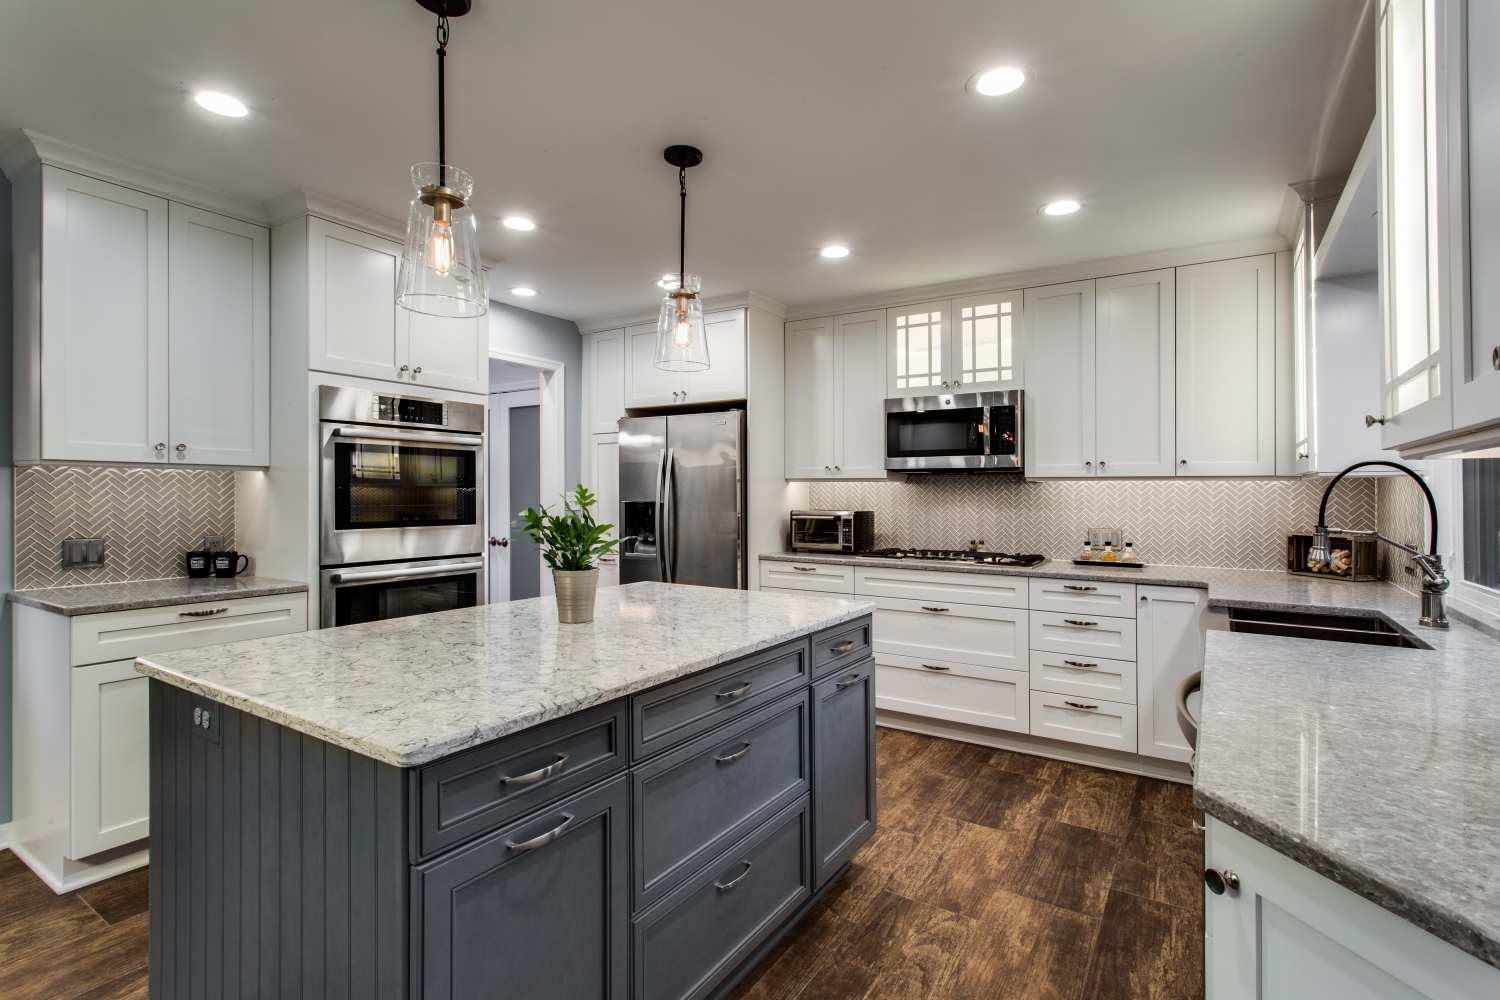 The Best Kitchen Remodel For Your Money.   Foster Remodeling Solutions